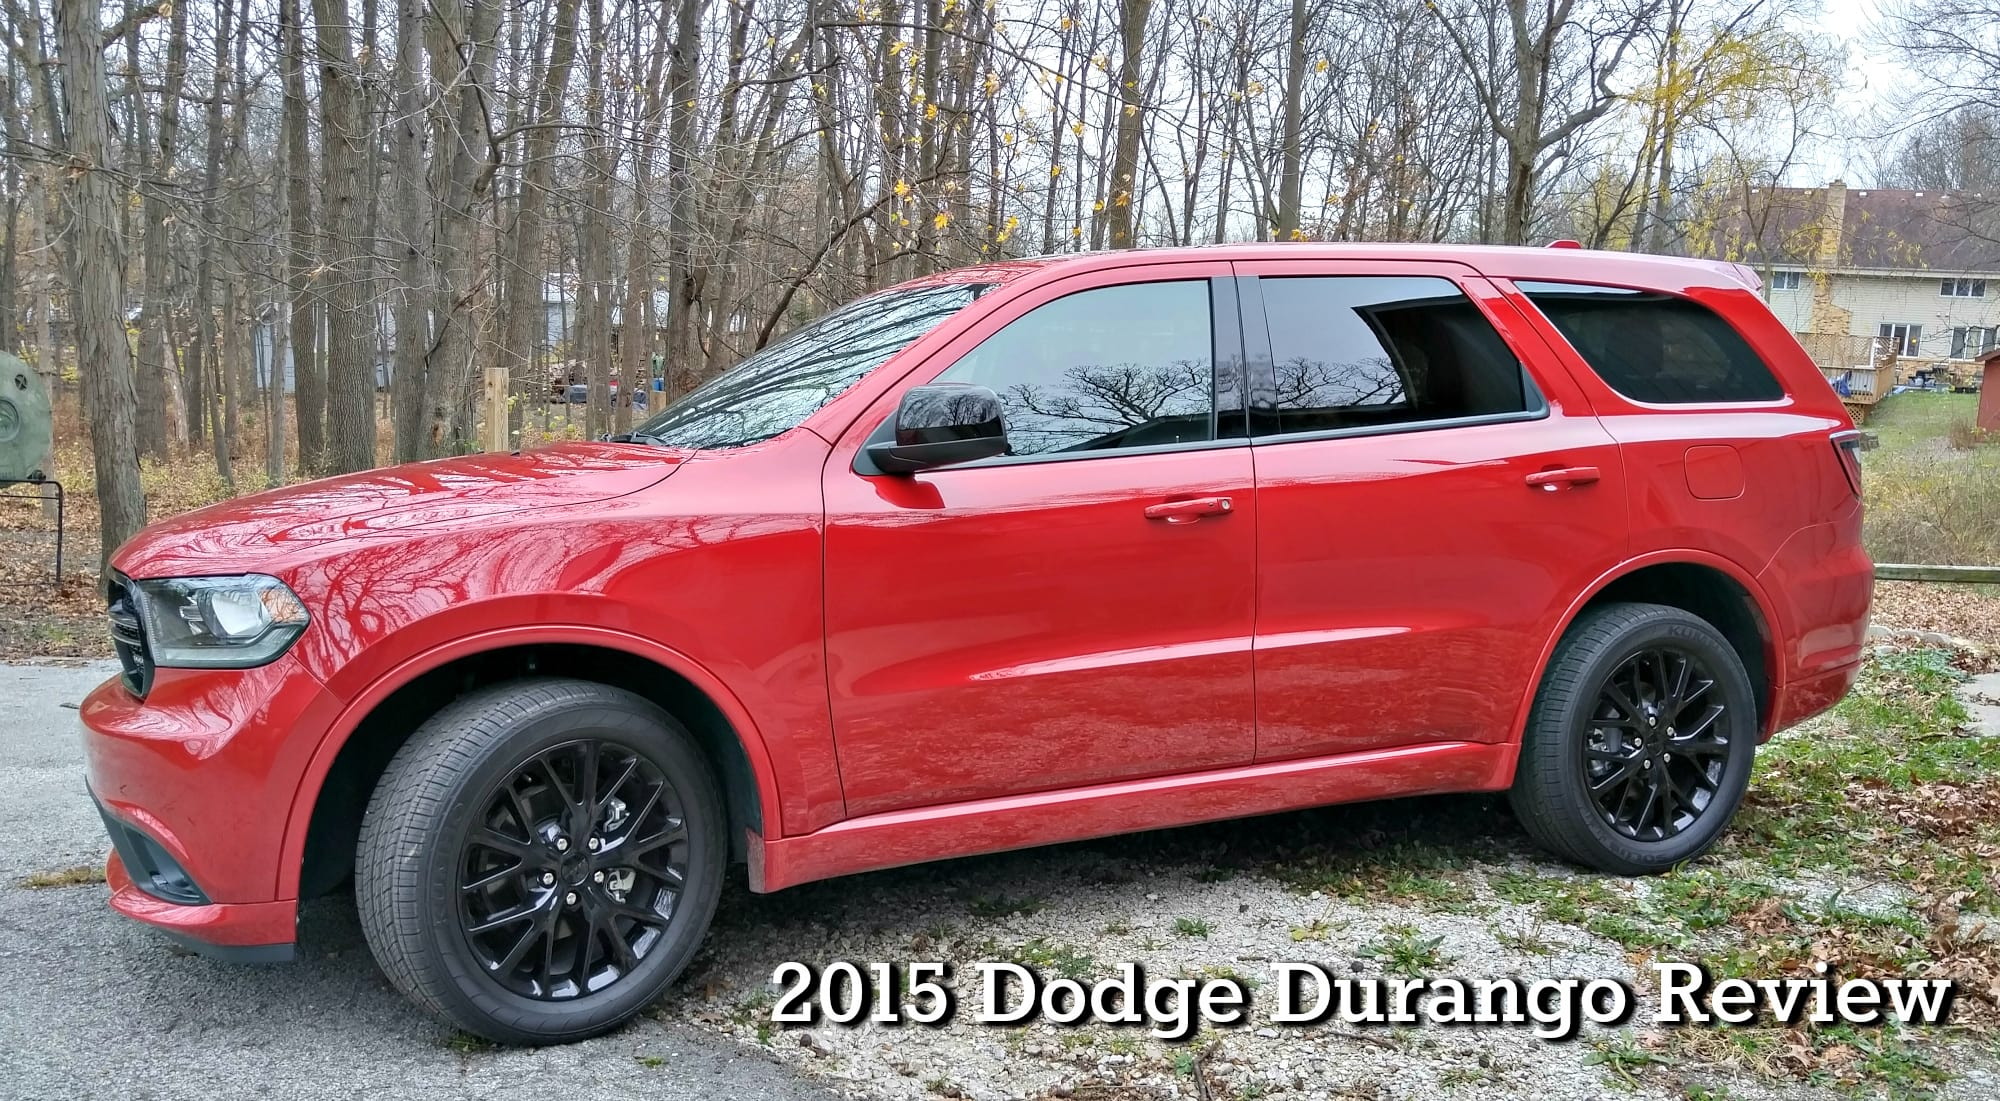 2015 Dodge Durango Review